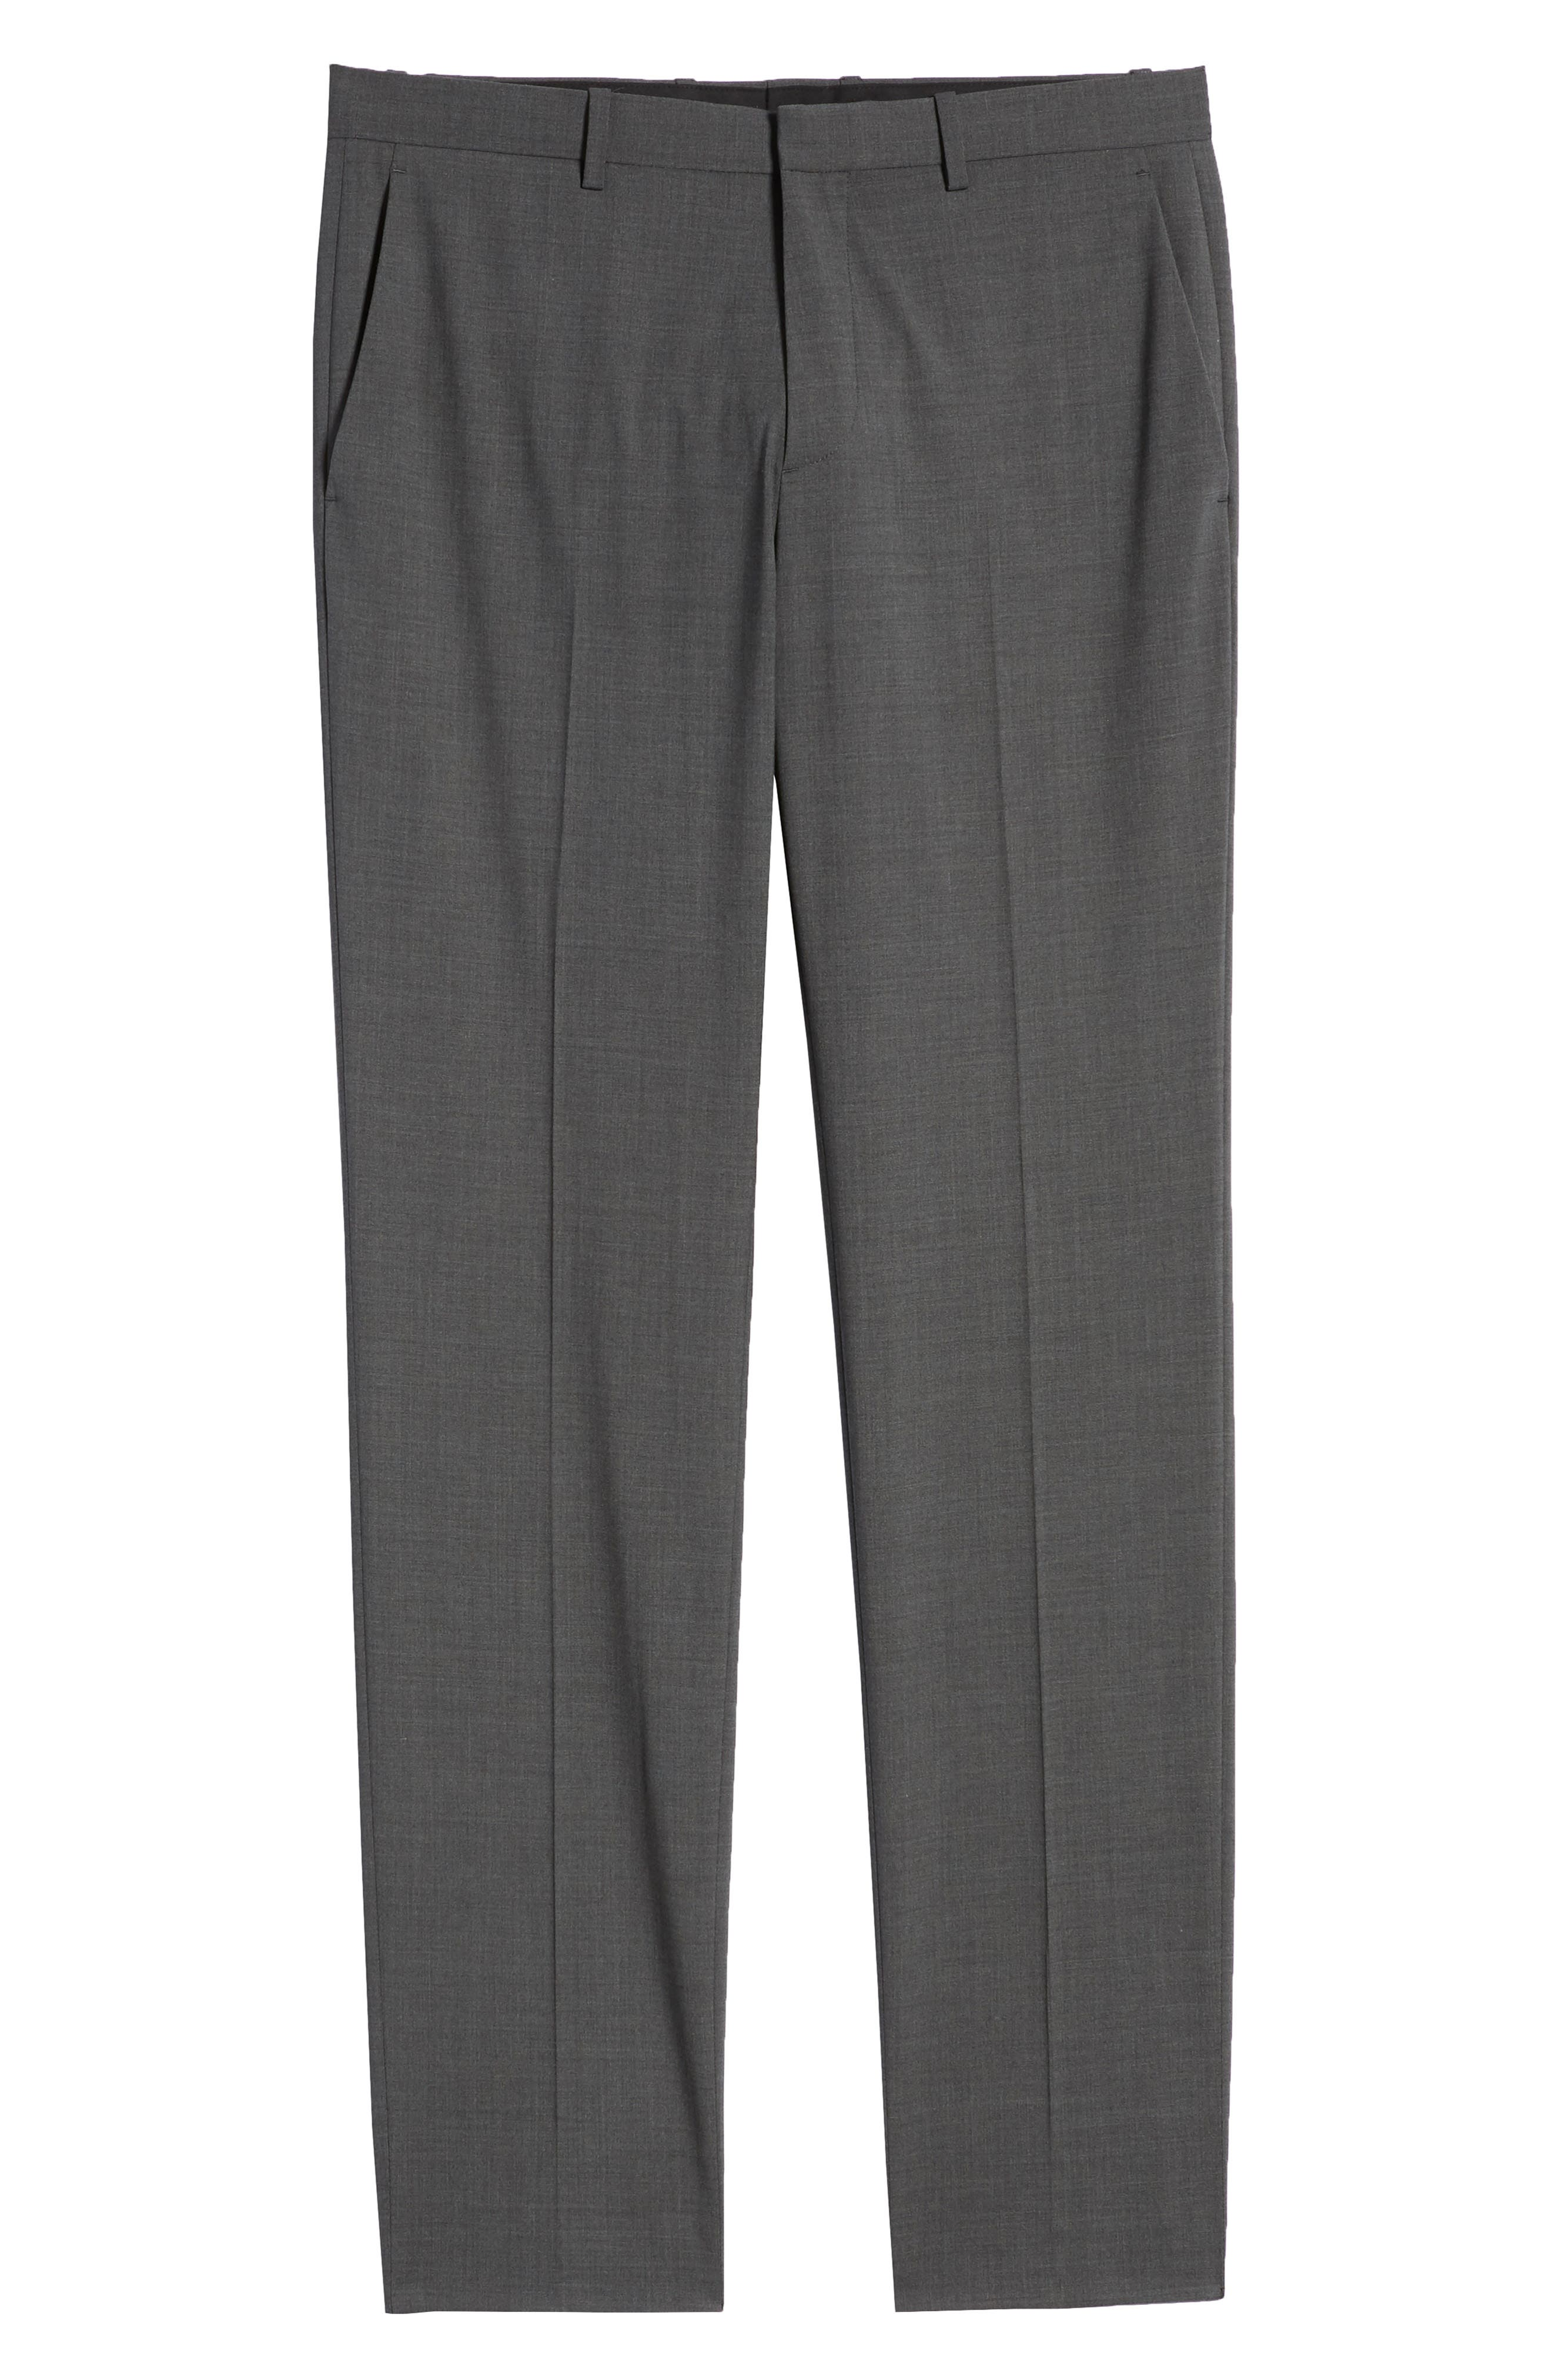 THEORY, Mayer New Tailor 2 Wool Trousers, Alternate thumbnail 6, color, CHARCOAL